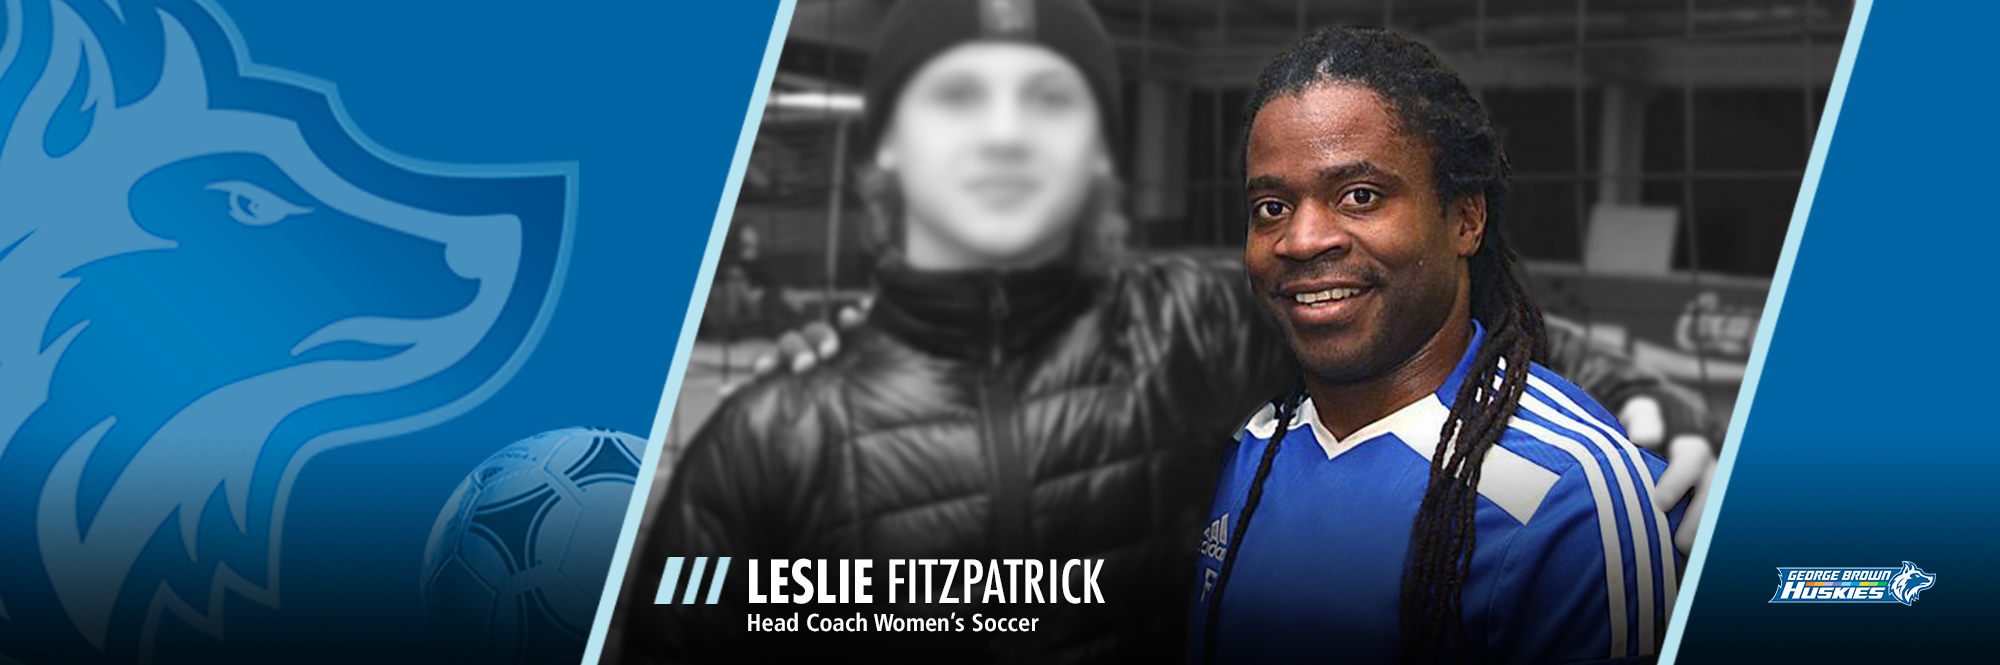 LESLIE FITZPATRICK NAMED HUSKIES WOMEN'S SOCCER HEAD COACH